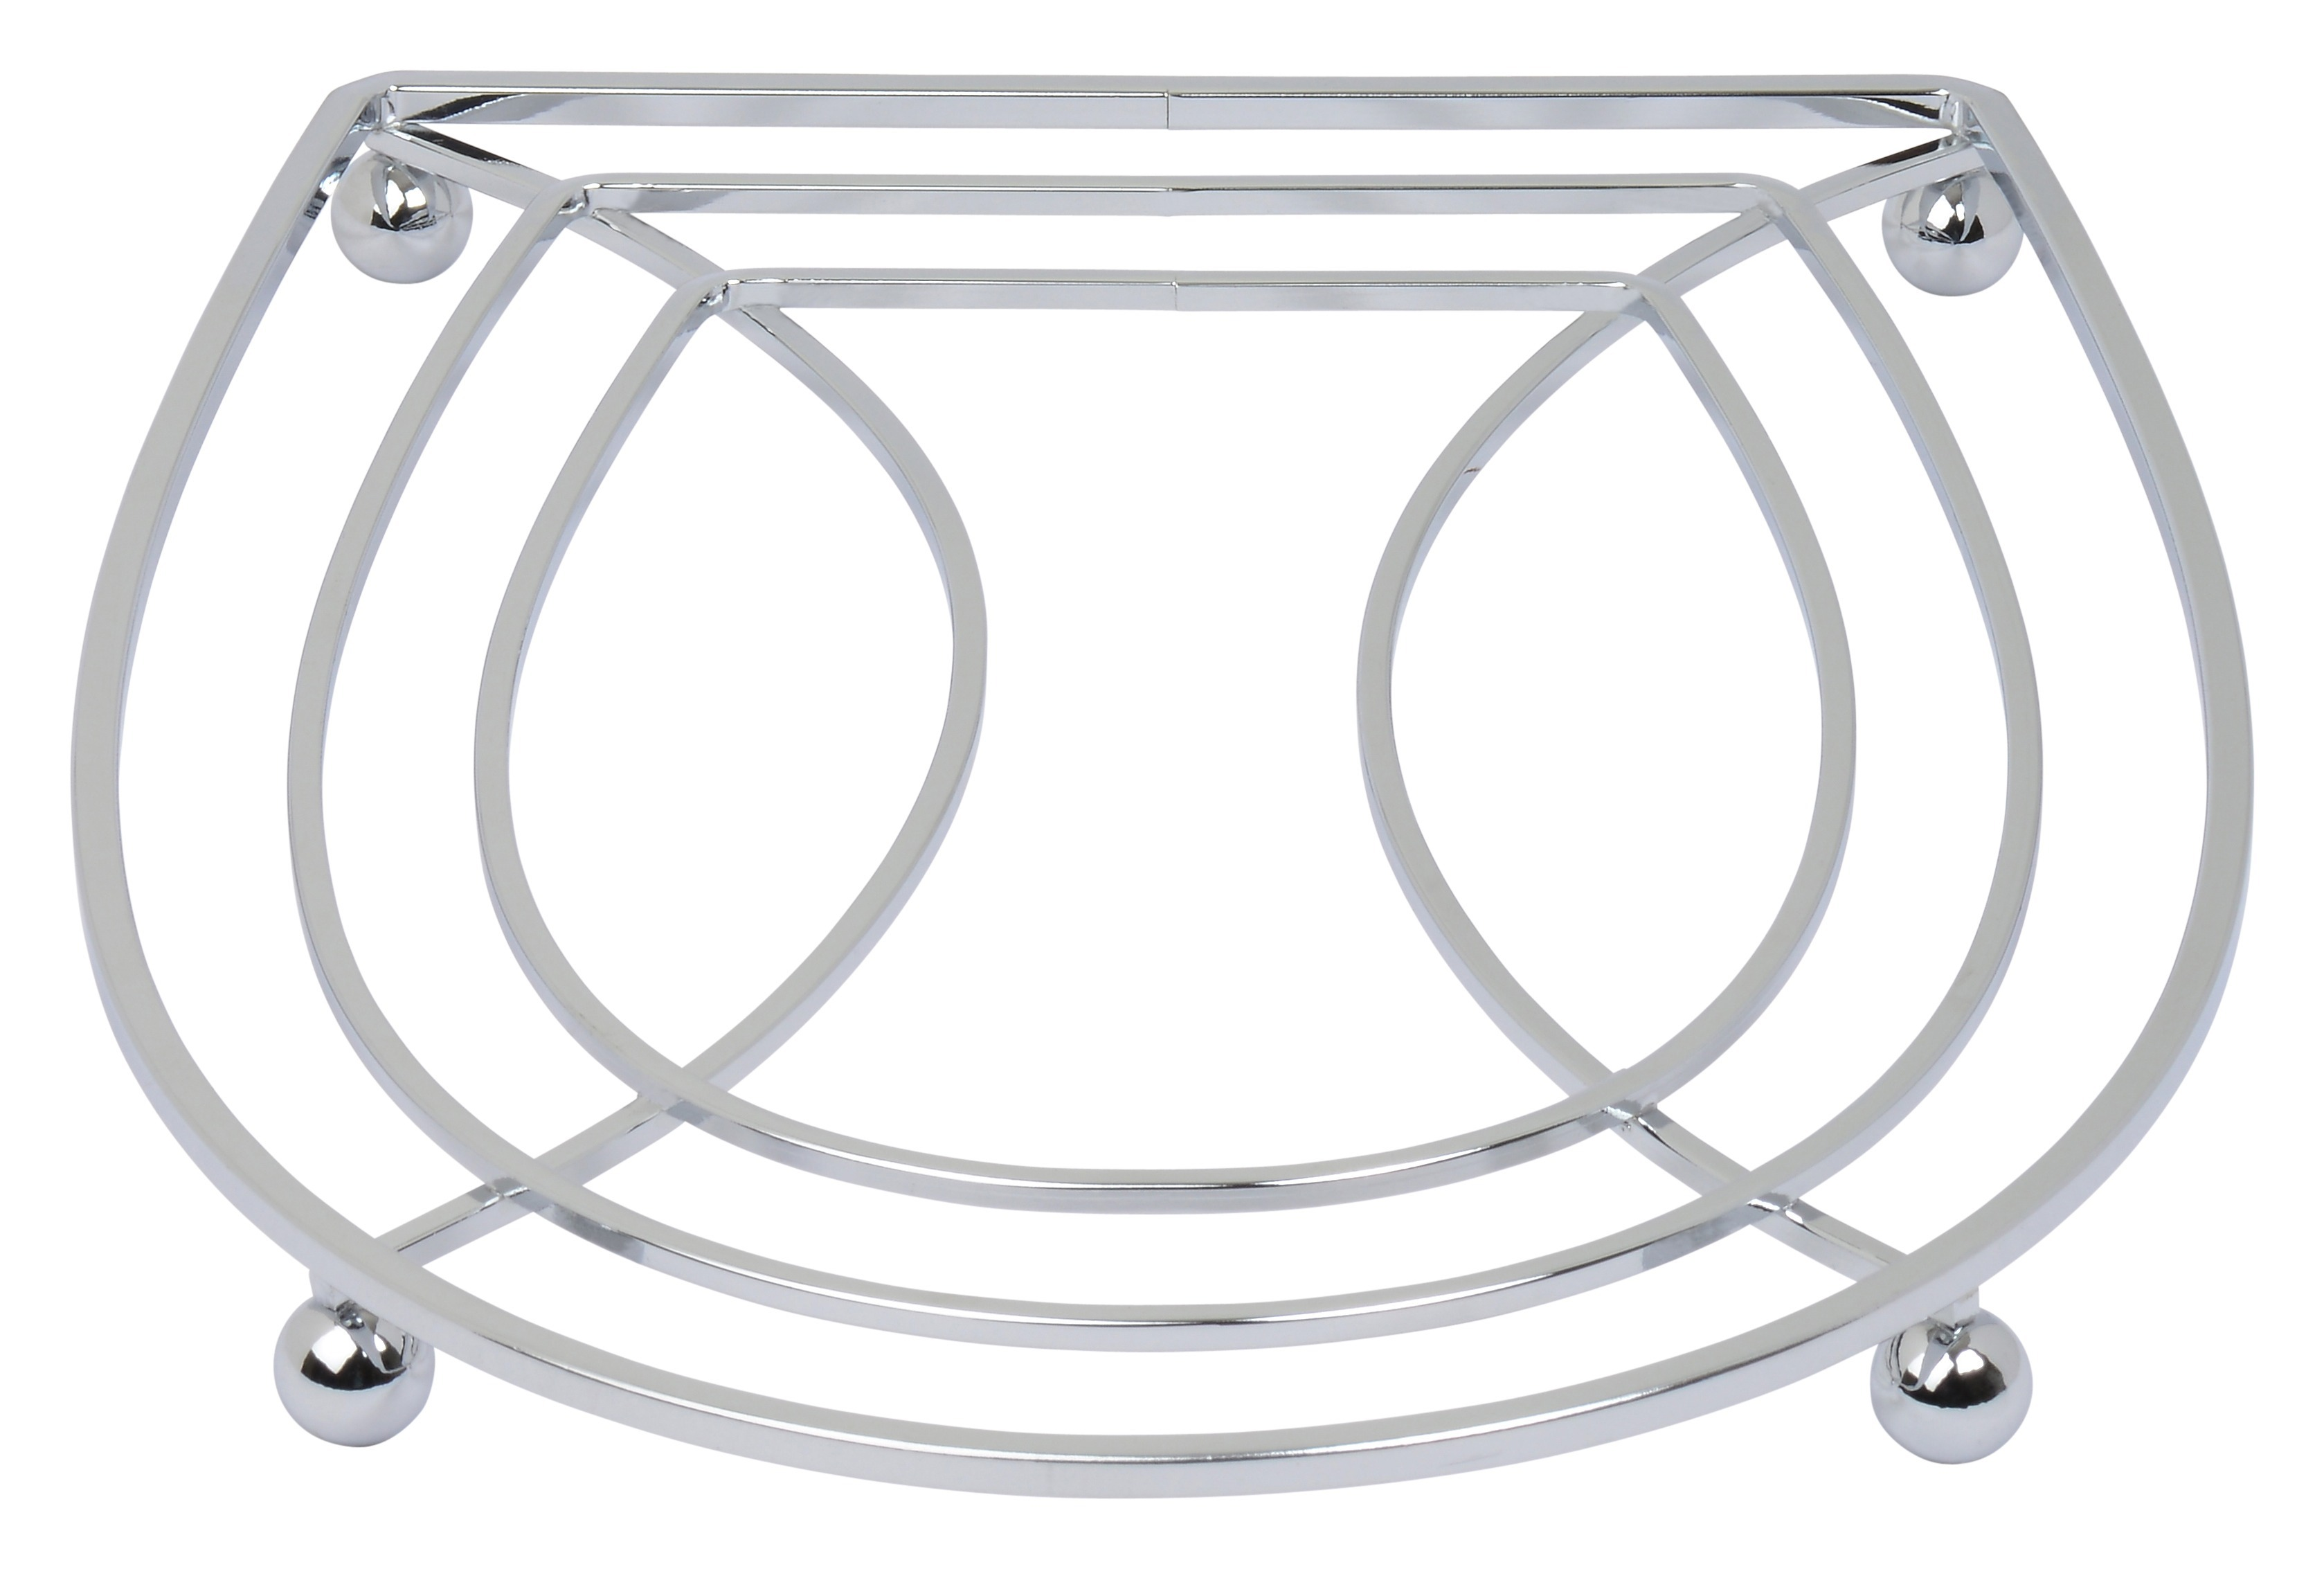 Trivet - High Quality Stainless Steel with Shiny Chrome Polish